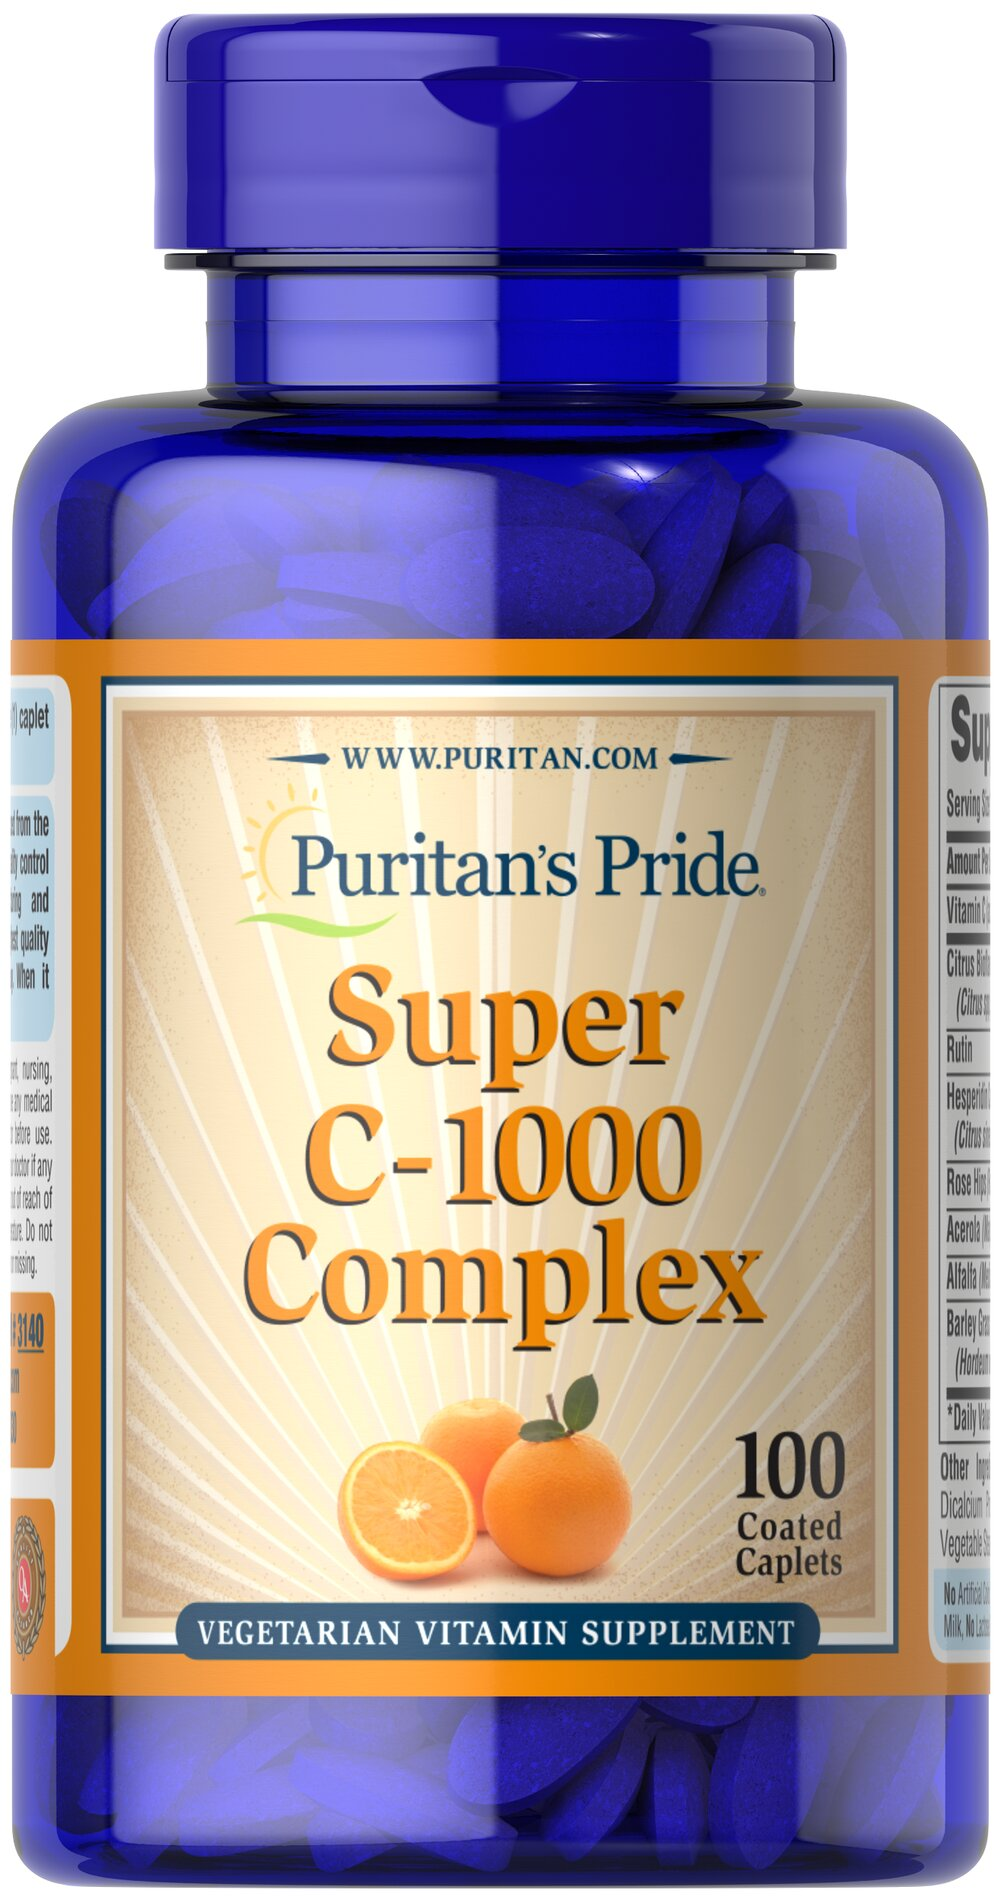 C-1000 Complex™ <p>Vitamin C  is essential to many functions in the body and is one of the leading vitamins for immune support.** Our C-complex includes potent Vitamin C as Ascorbic Acid. We also include Citrus Bioflavonoids, Rose Hips, Rutin, and Acerola.**</p><p>Offers superior antioxidant support.**</p><p>Supports healthy immune function and promotes well-being.**</p> 100 Tablets 1000 mg $13.99